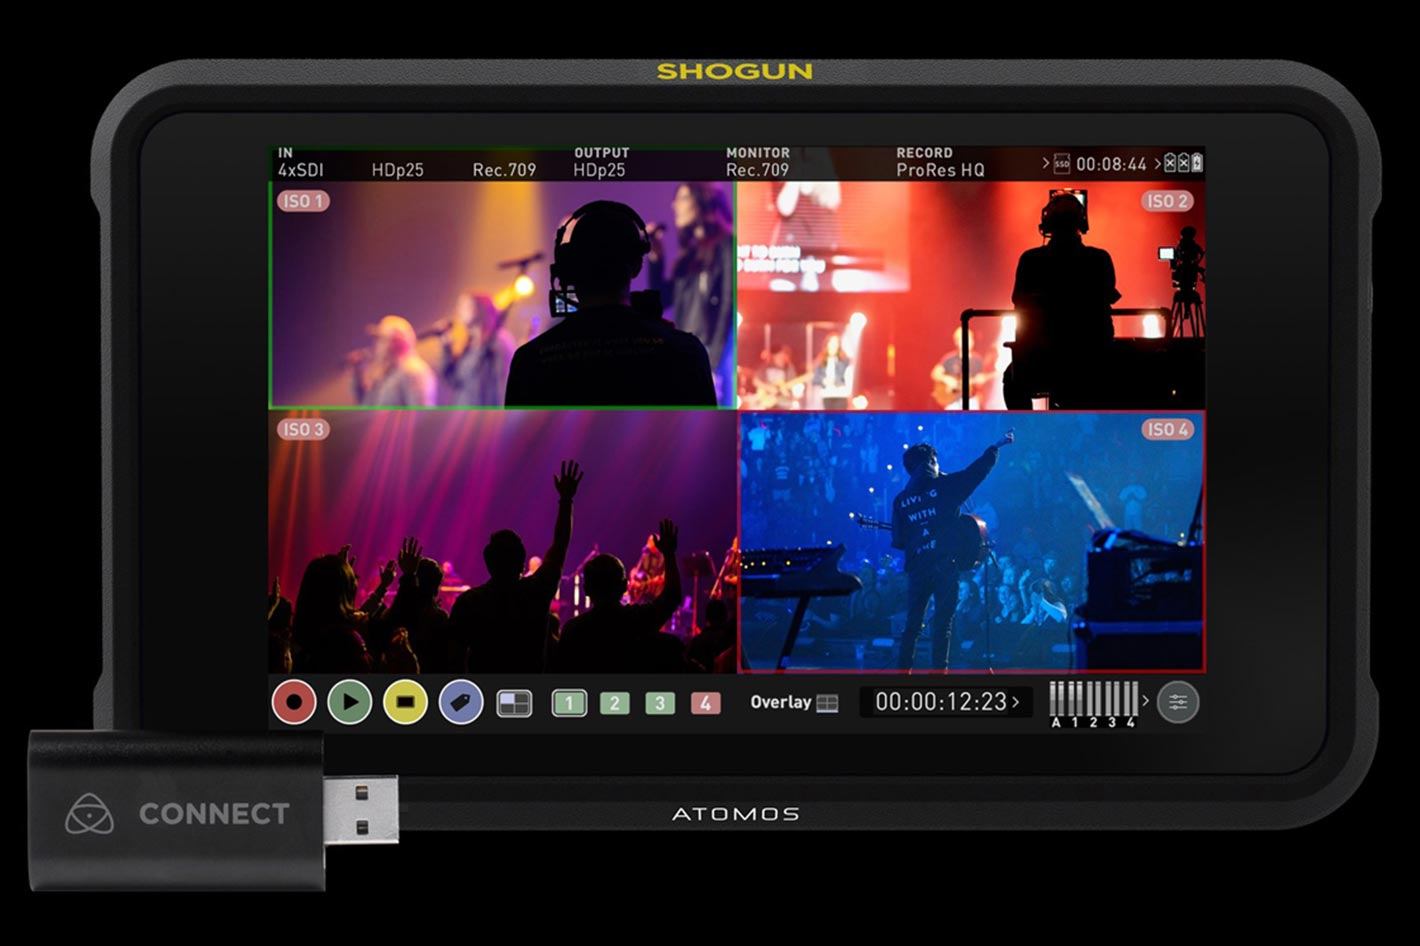 Atomos Connect: a professional HDMI to USB conversion for streaming